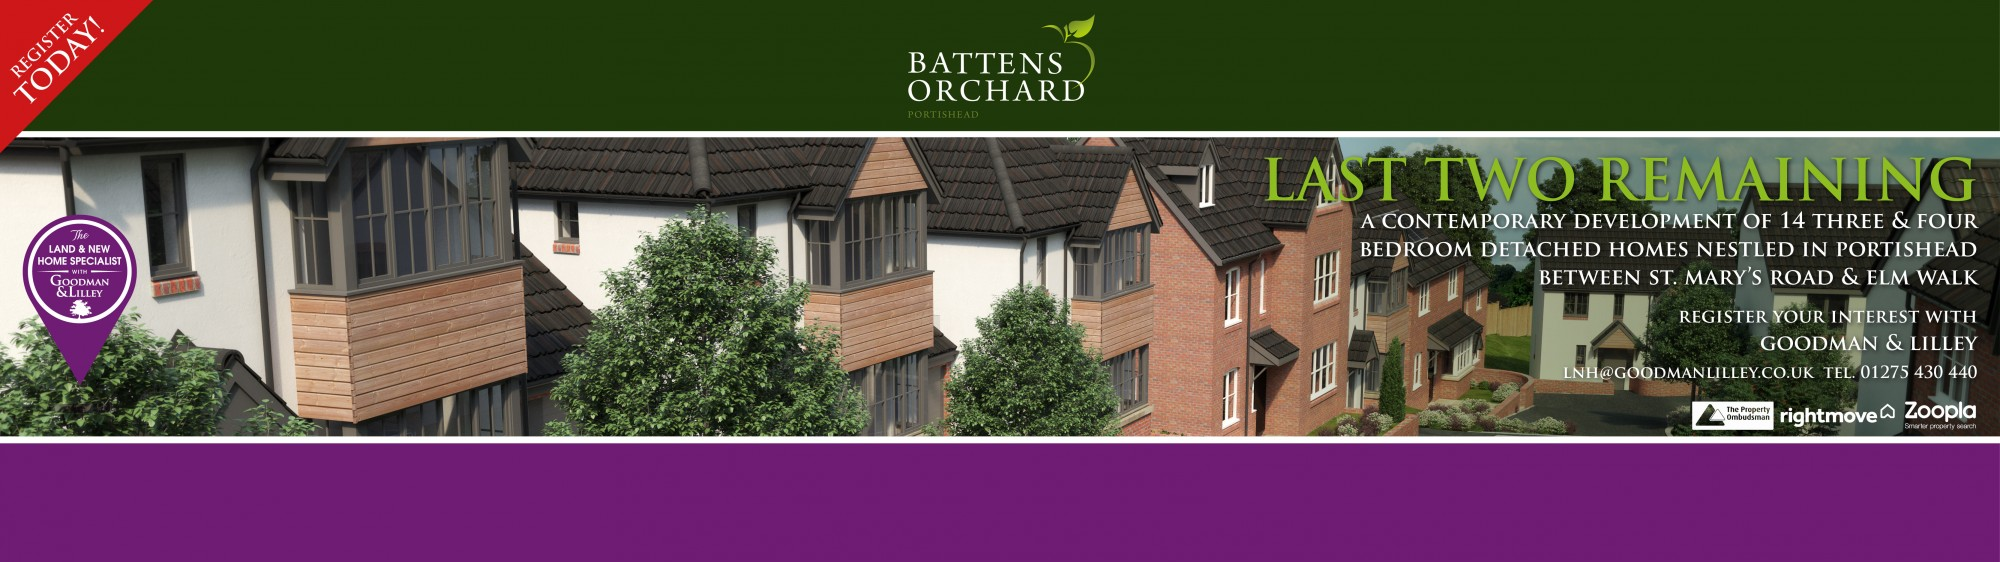 Battens Orchard, Portishead